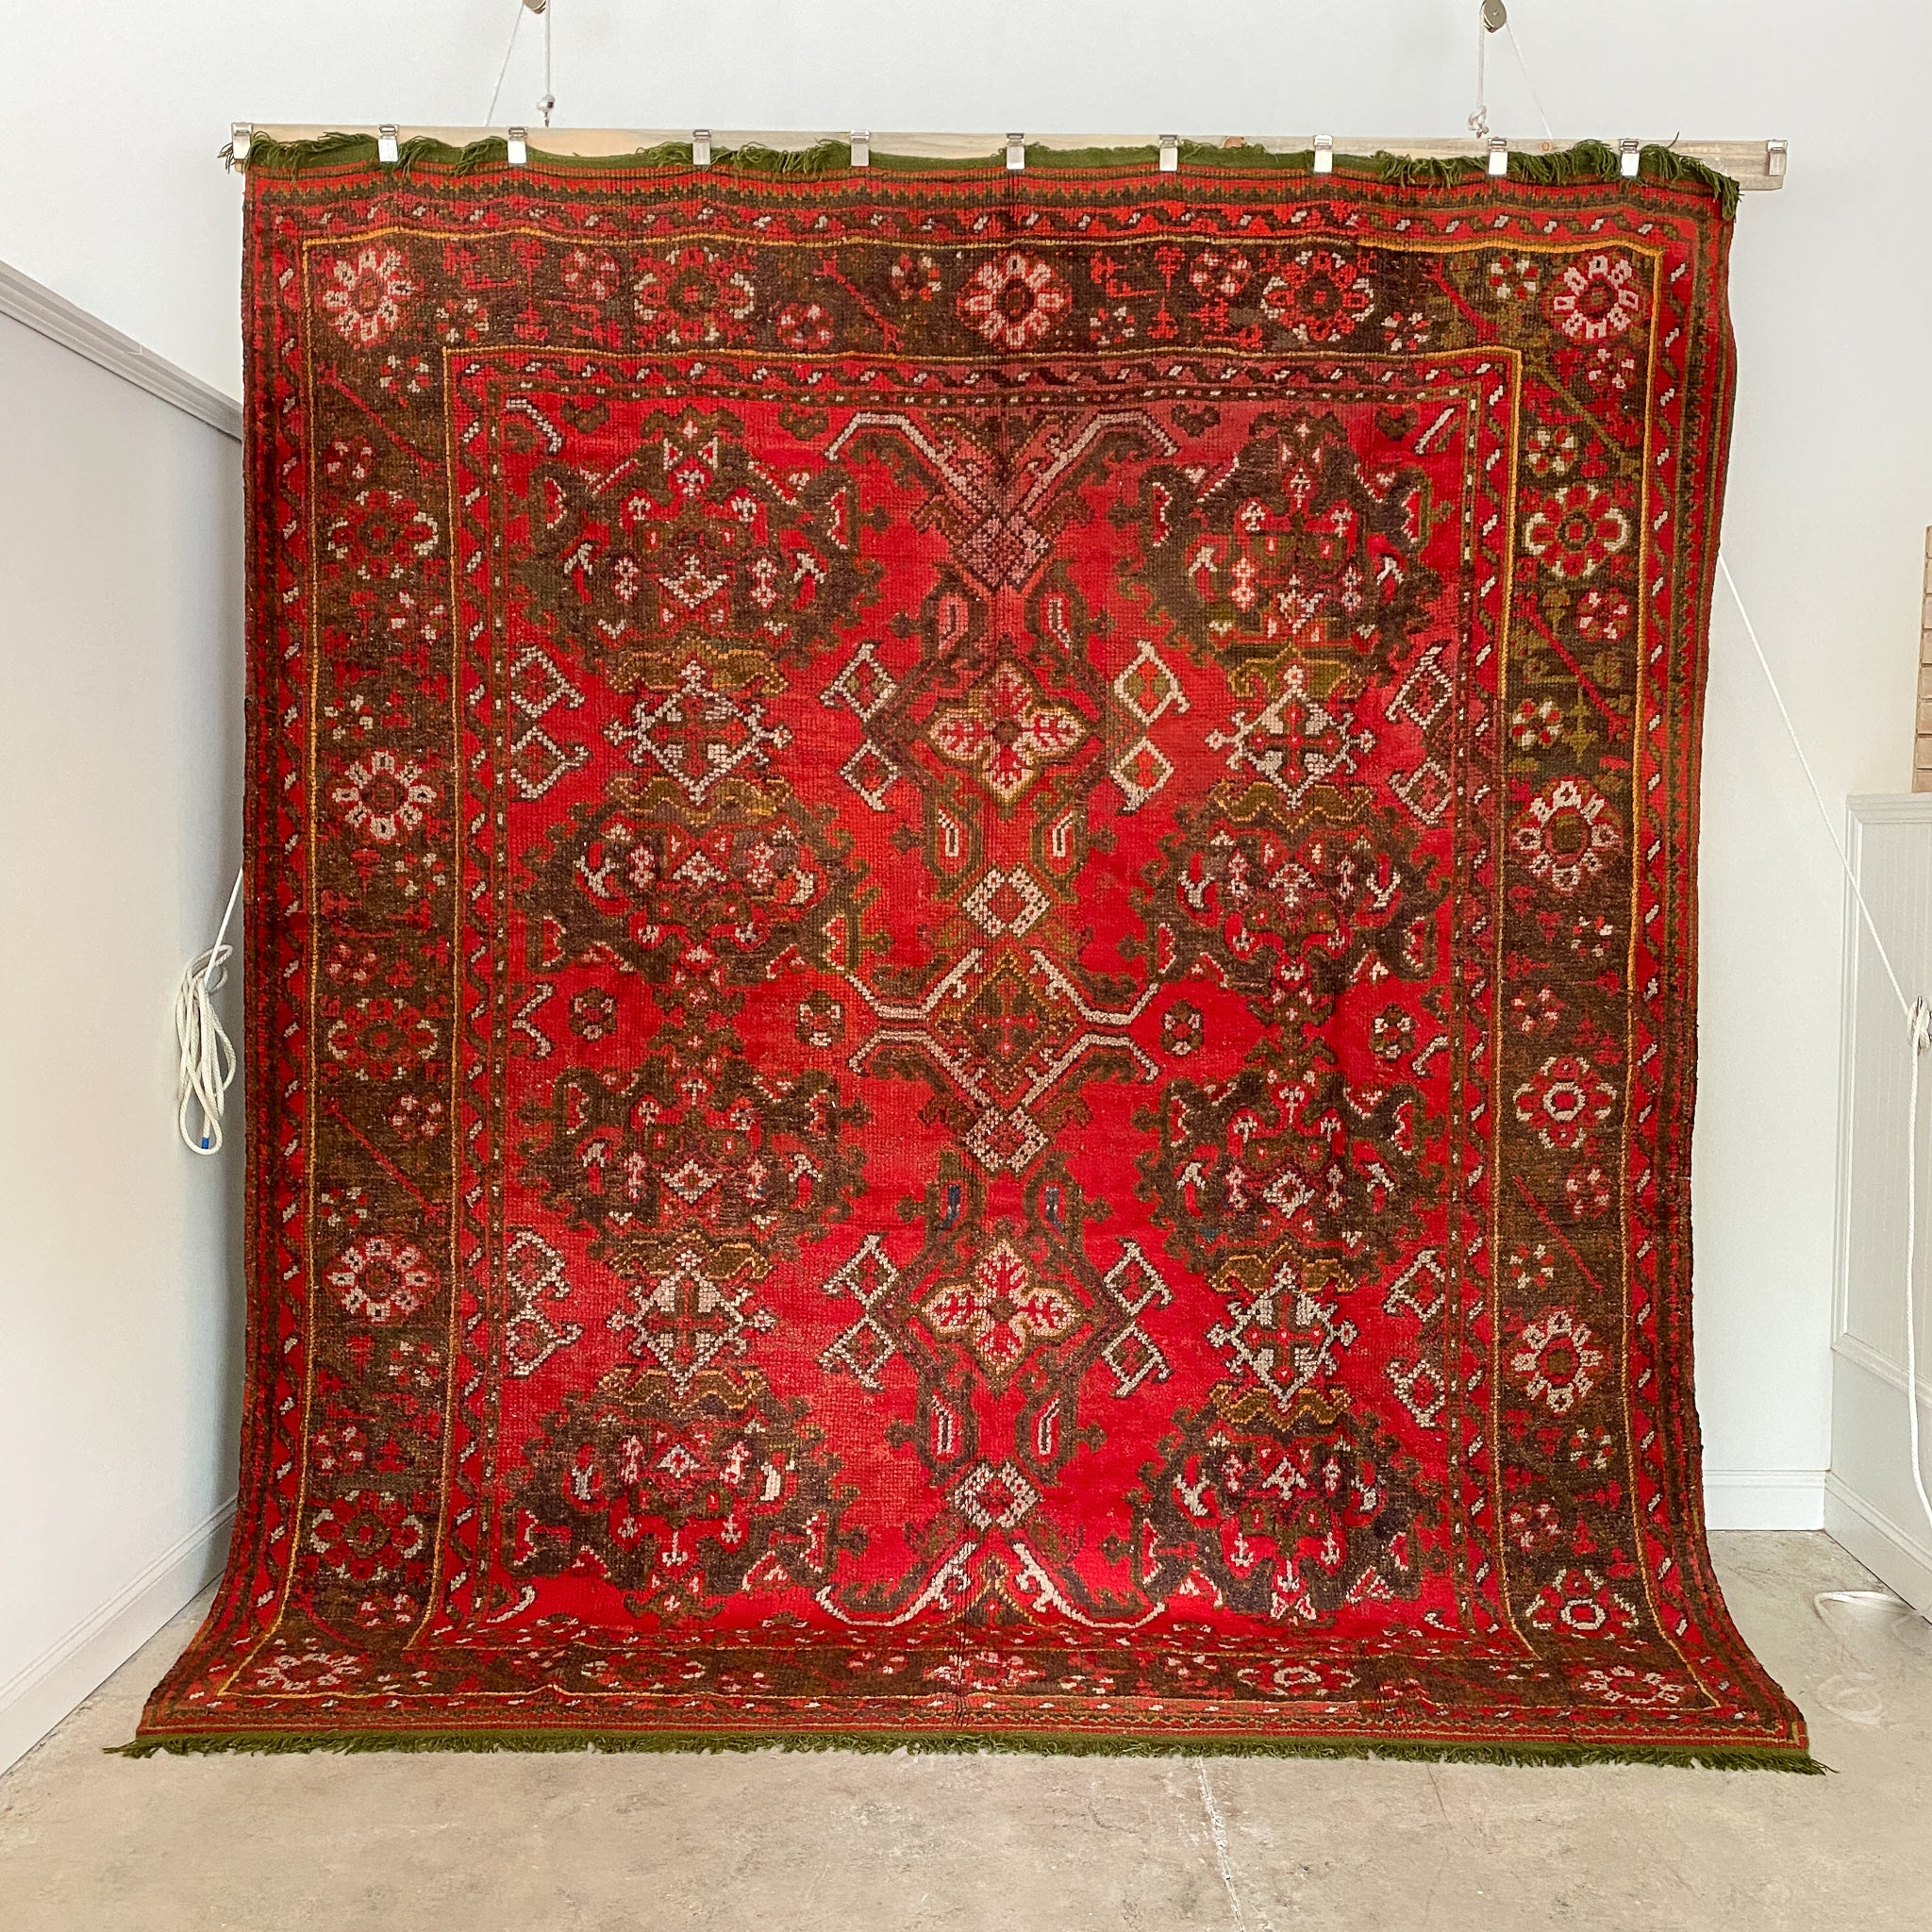 1008 Handwoven Antique Rug 9'9x11